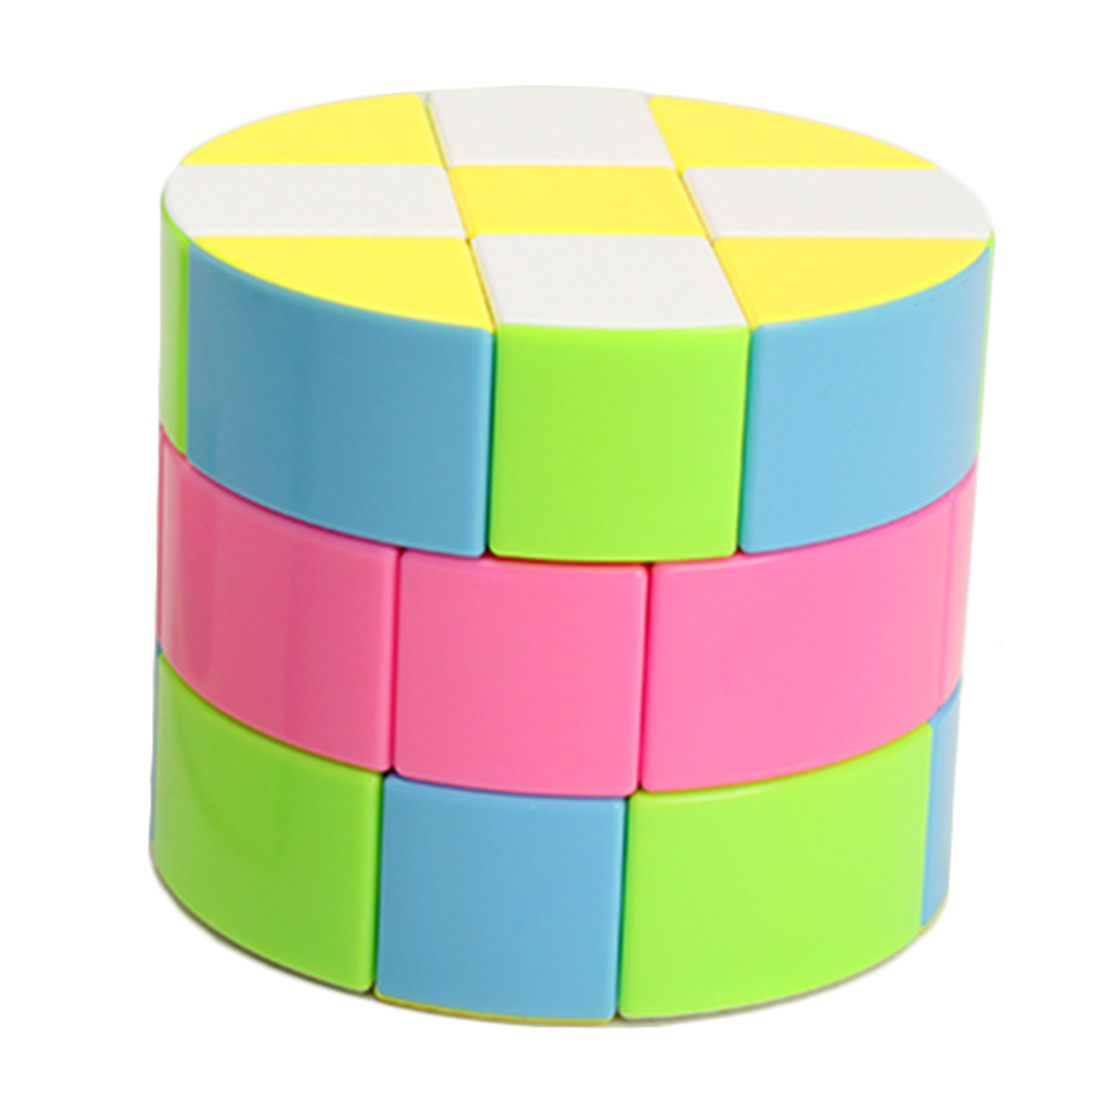 ZCUBE Cloud Series 3x3 Cylinder Magic Cube Speed Cube Puzzle Toy Colorful